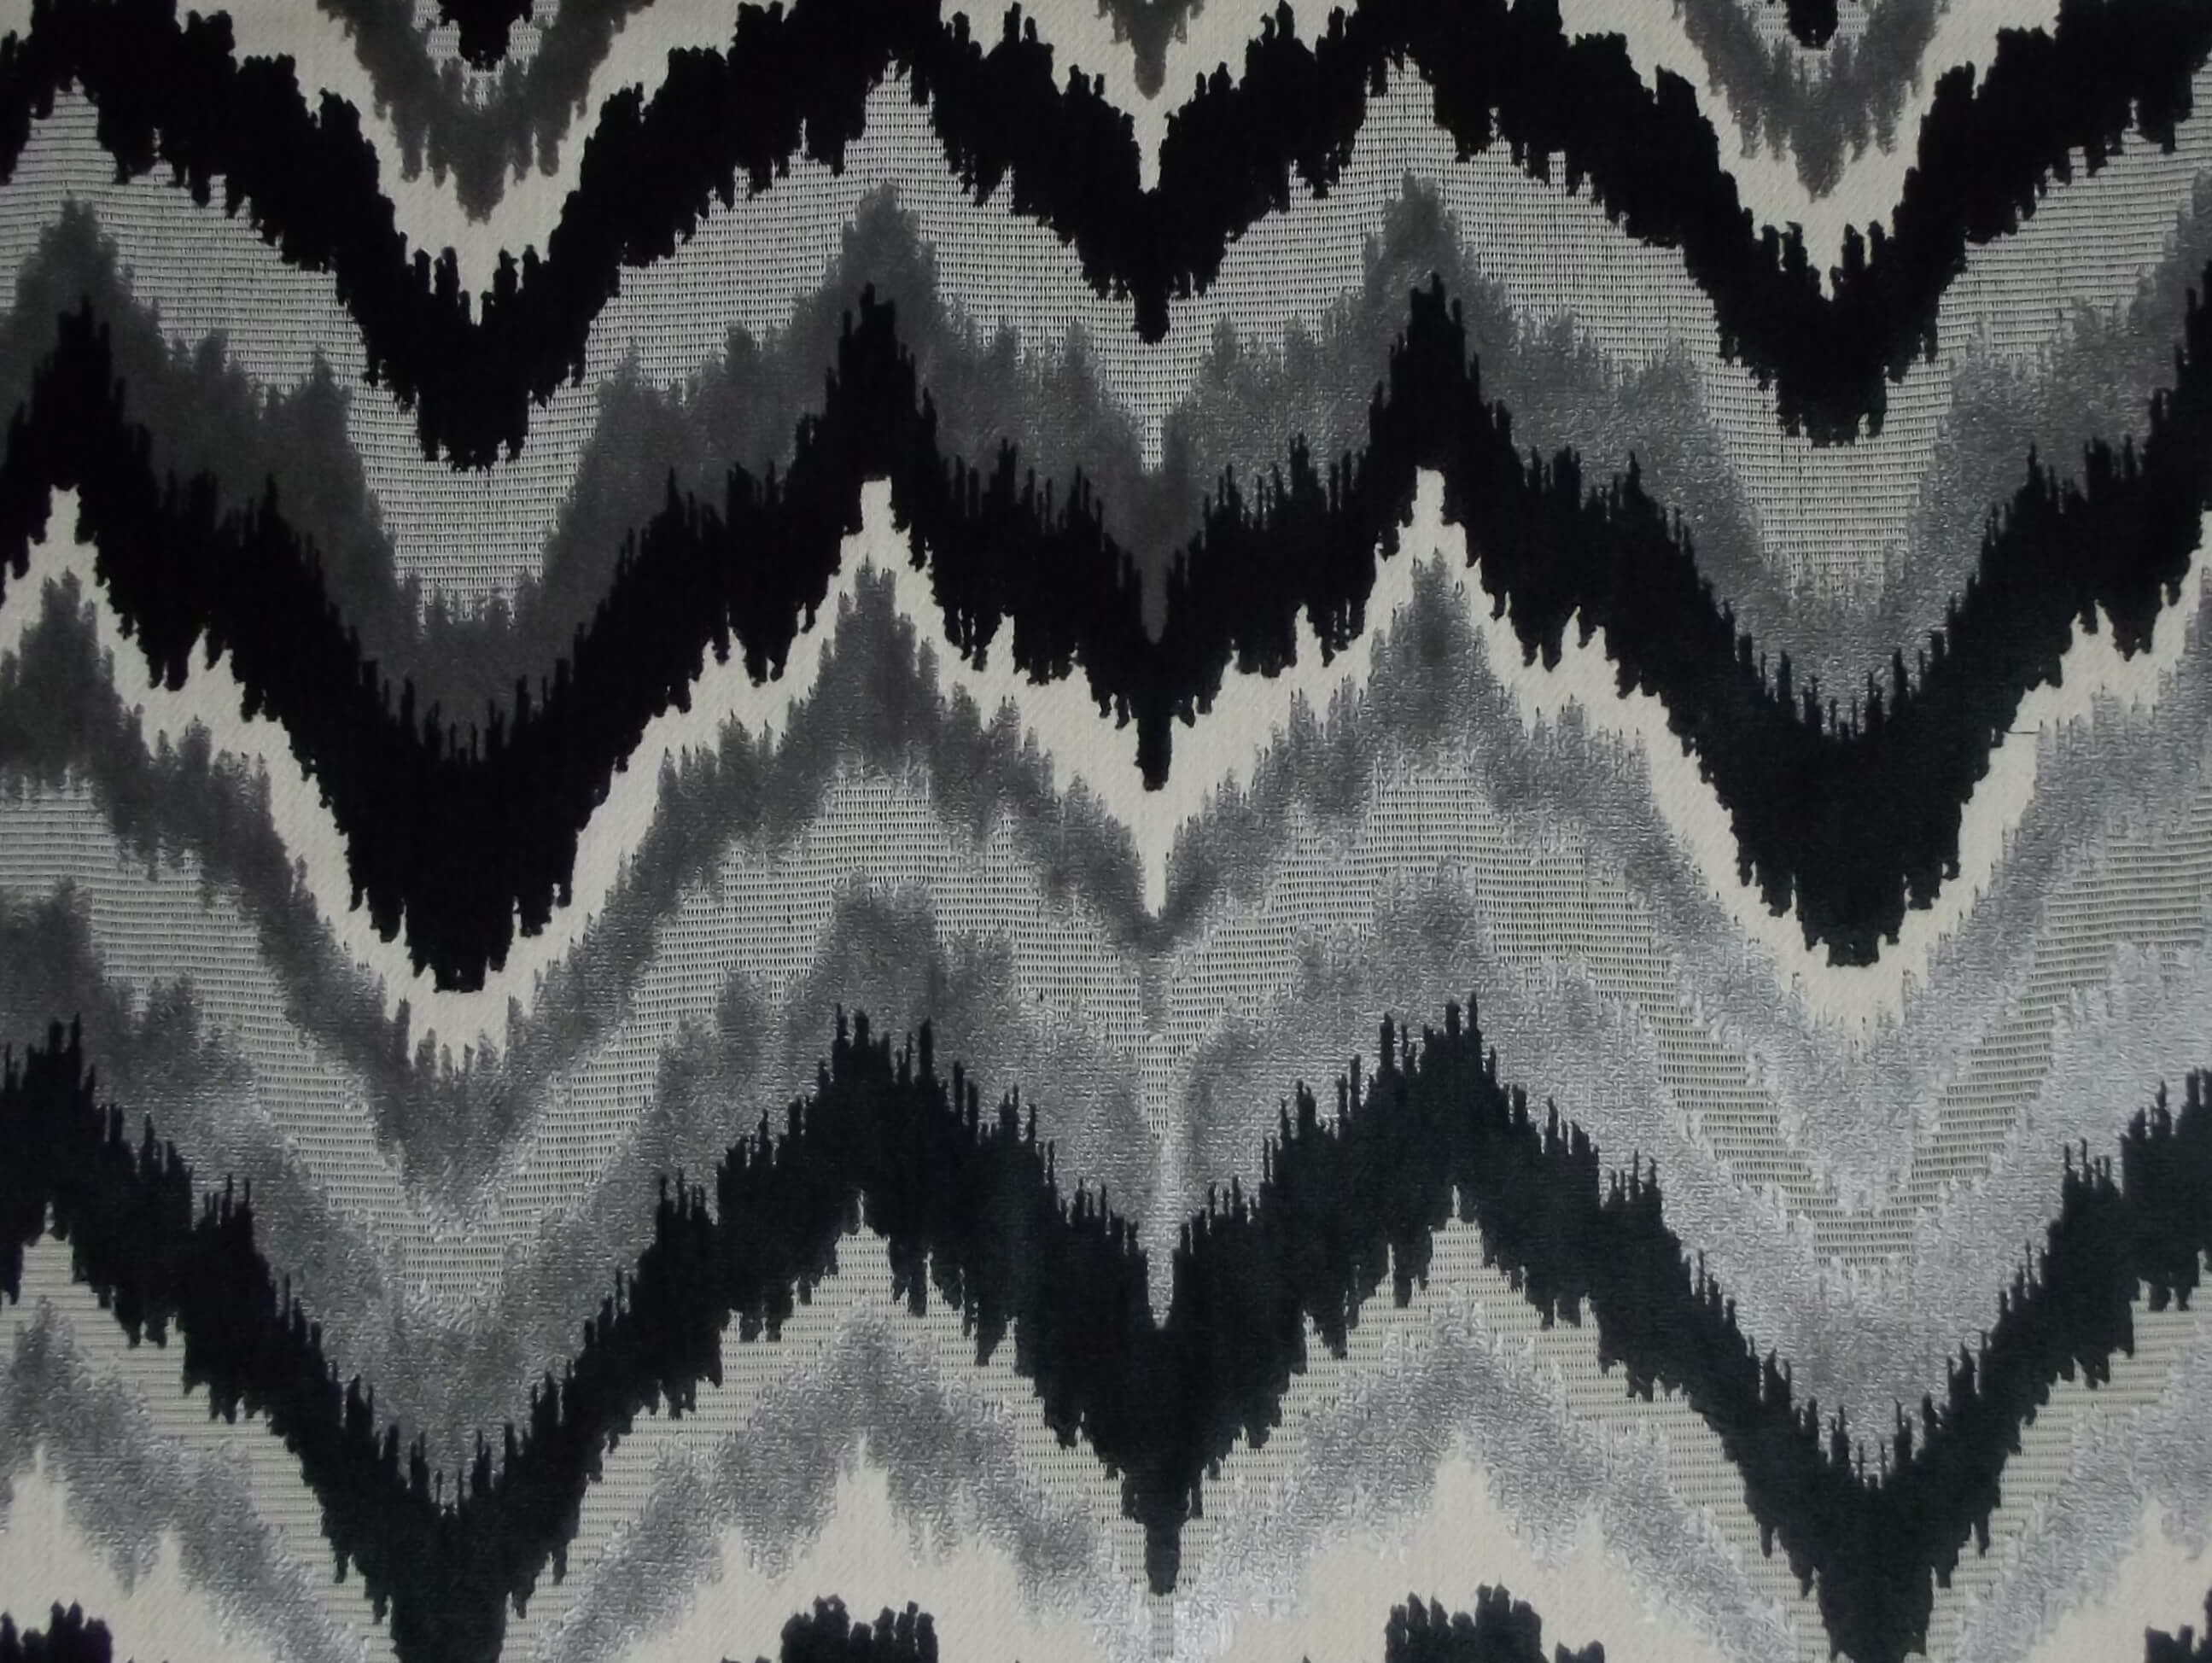 Ross Fabrics A Leading Supplier Of Upholstery Fabrics To The